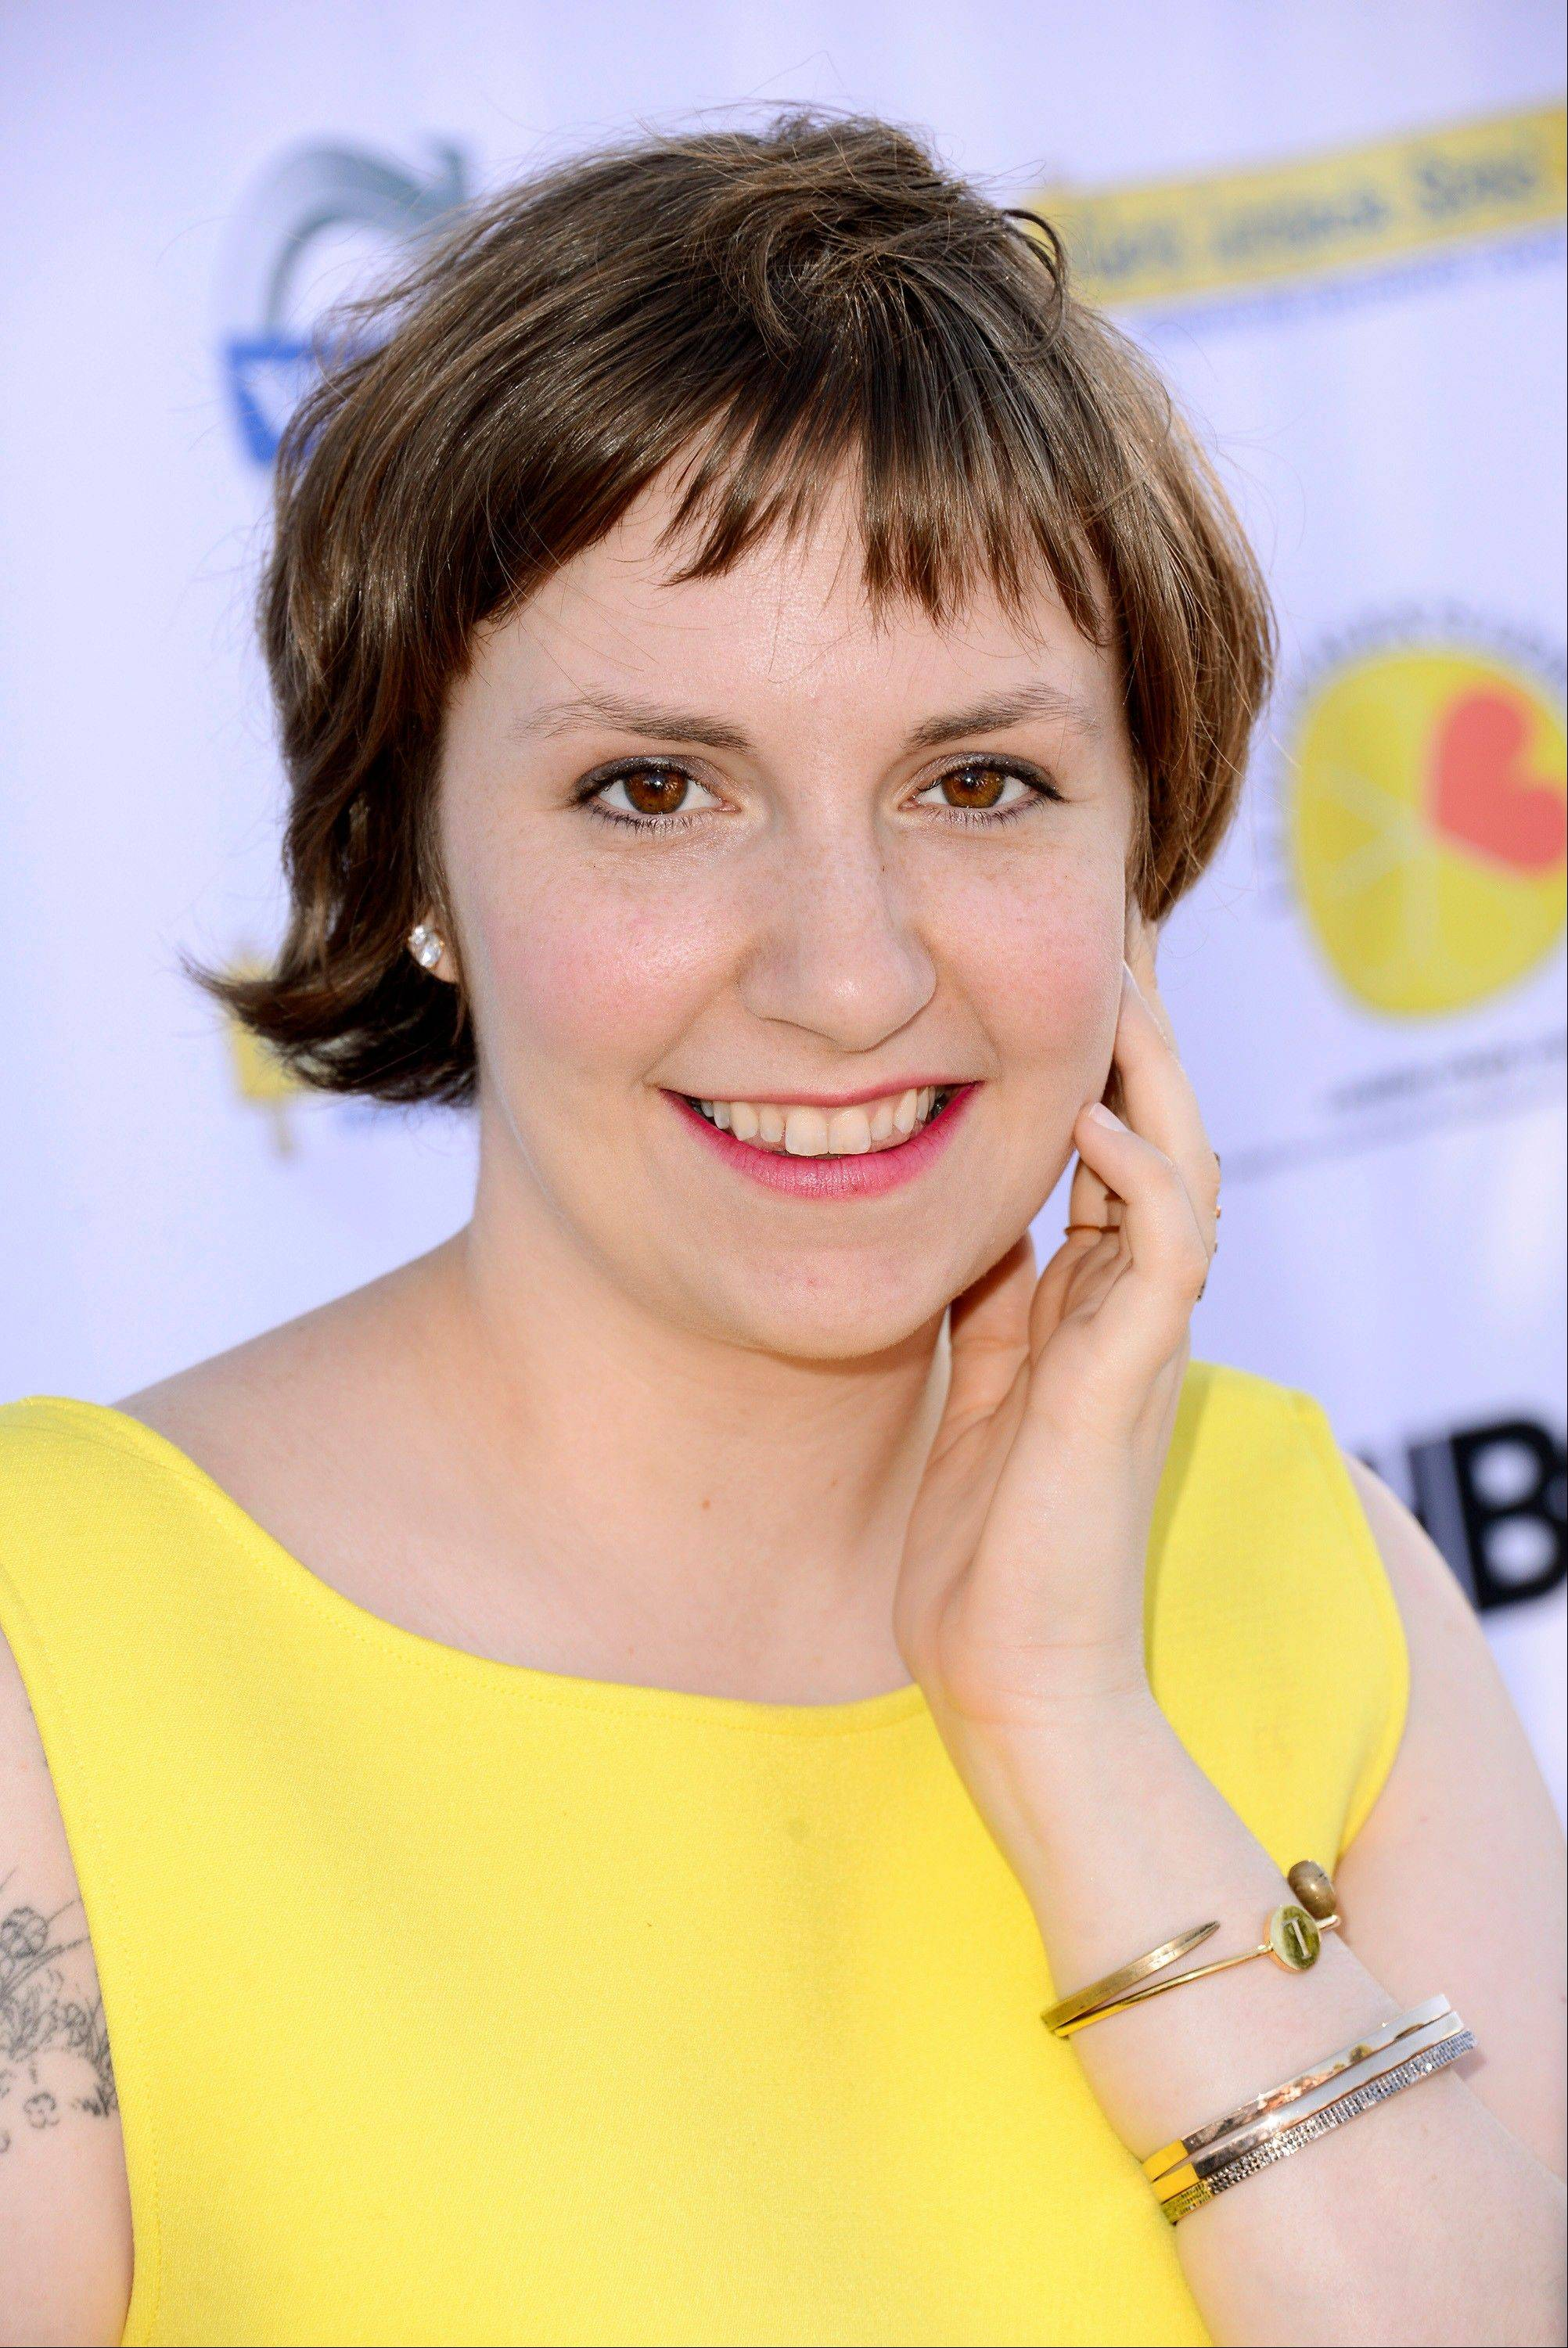 Actress Lena Dunham is working on a new TV project for HBO based on Betty Halbreich, renowned personal shopper at Bergdorf Goodman department store.